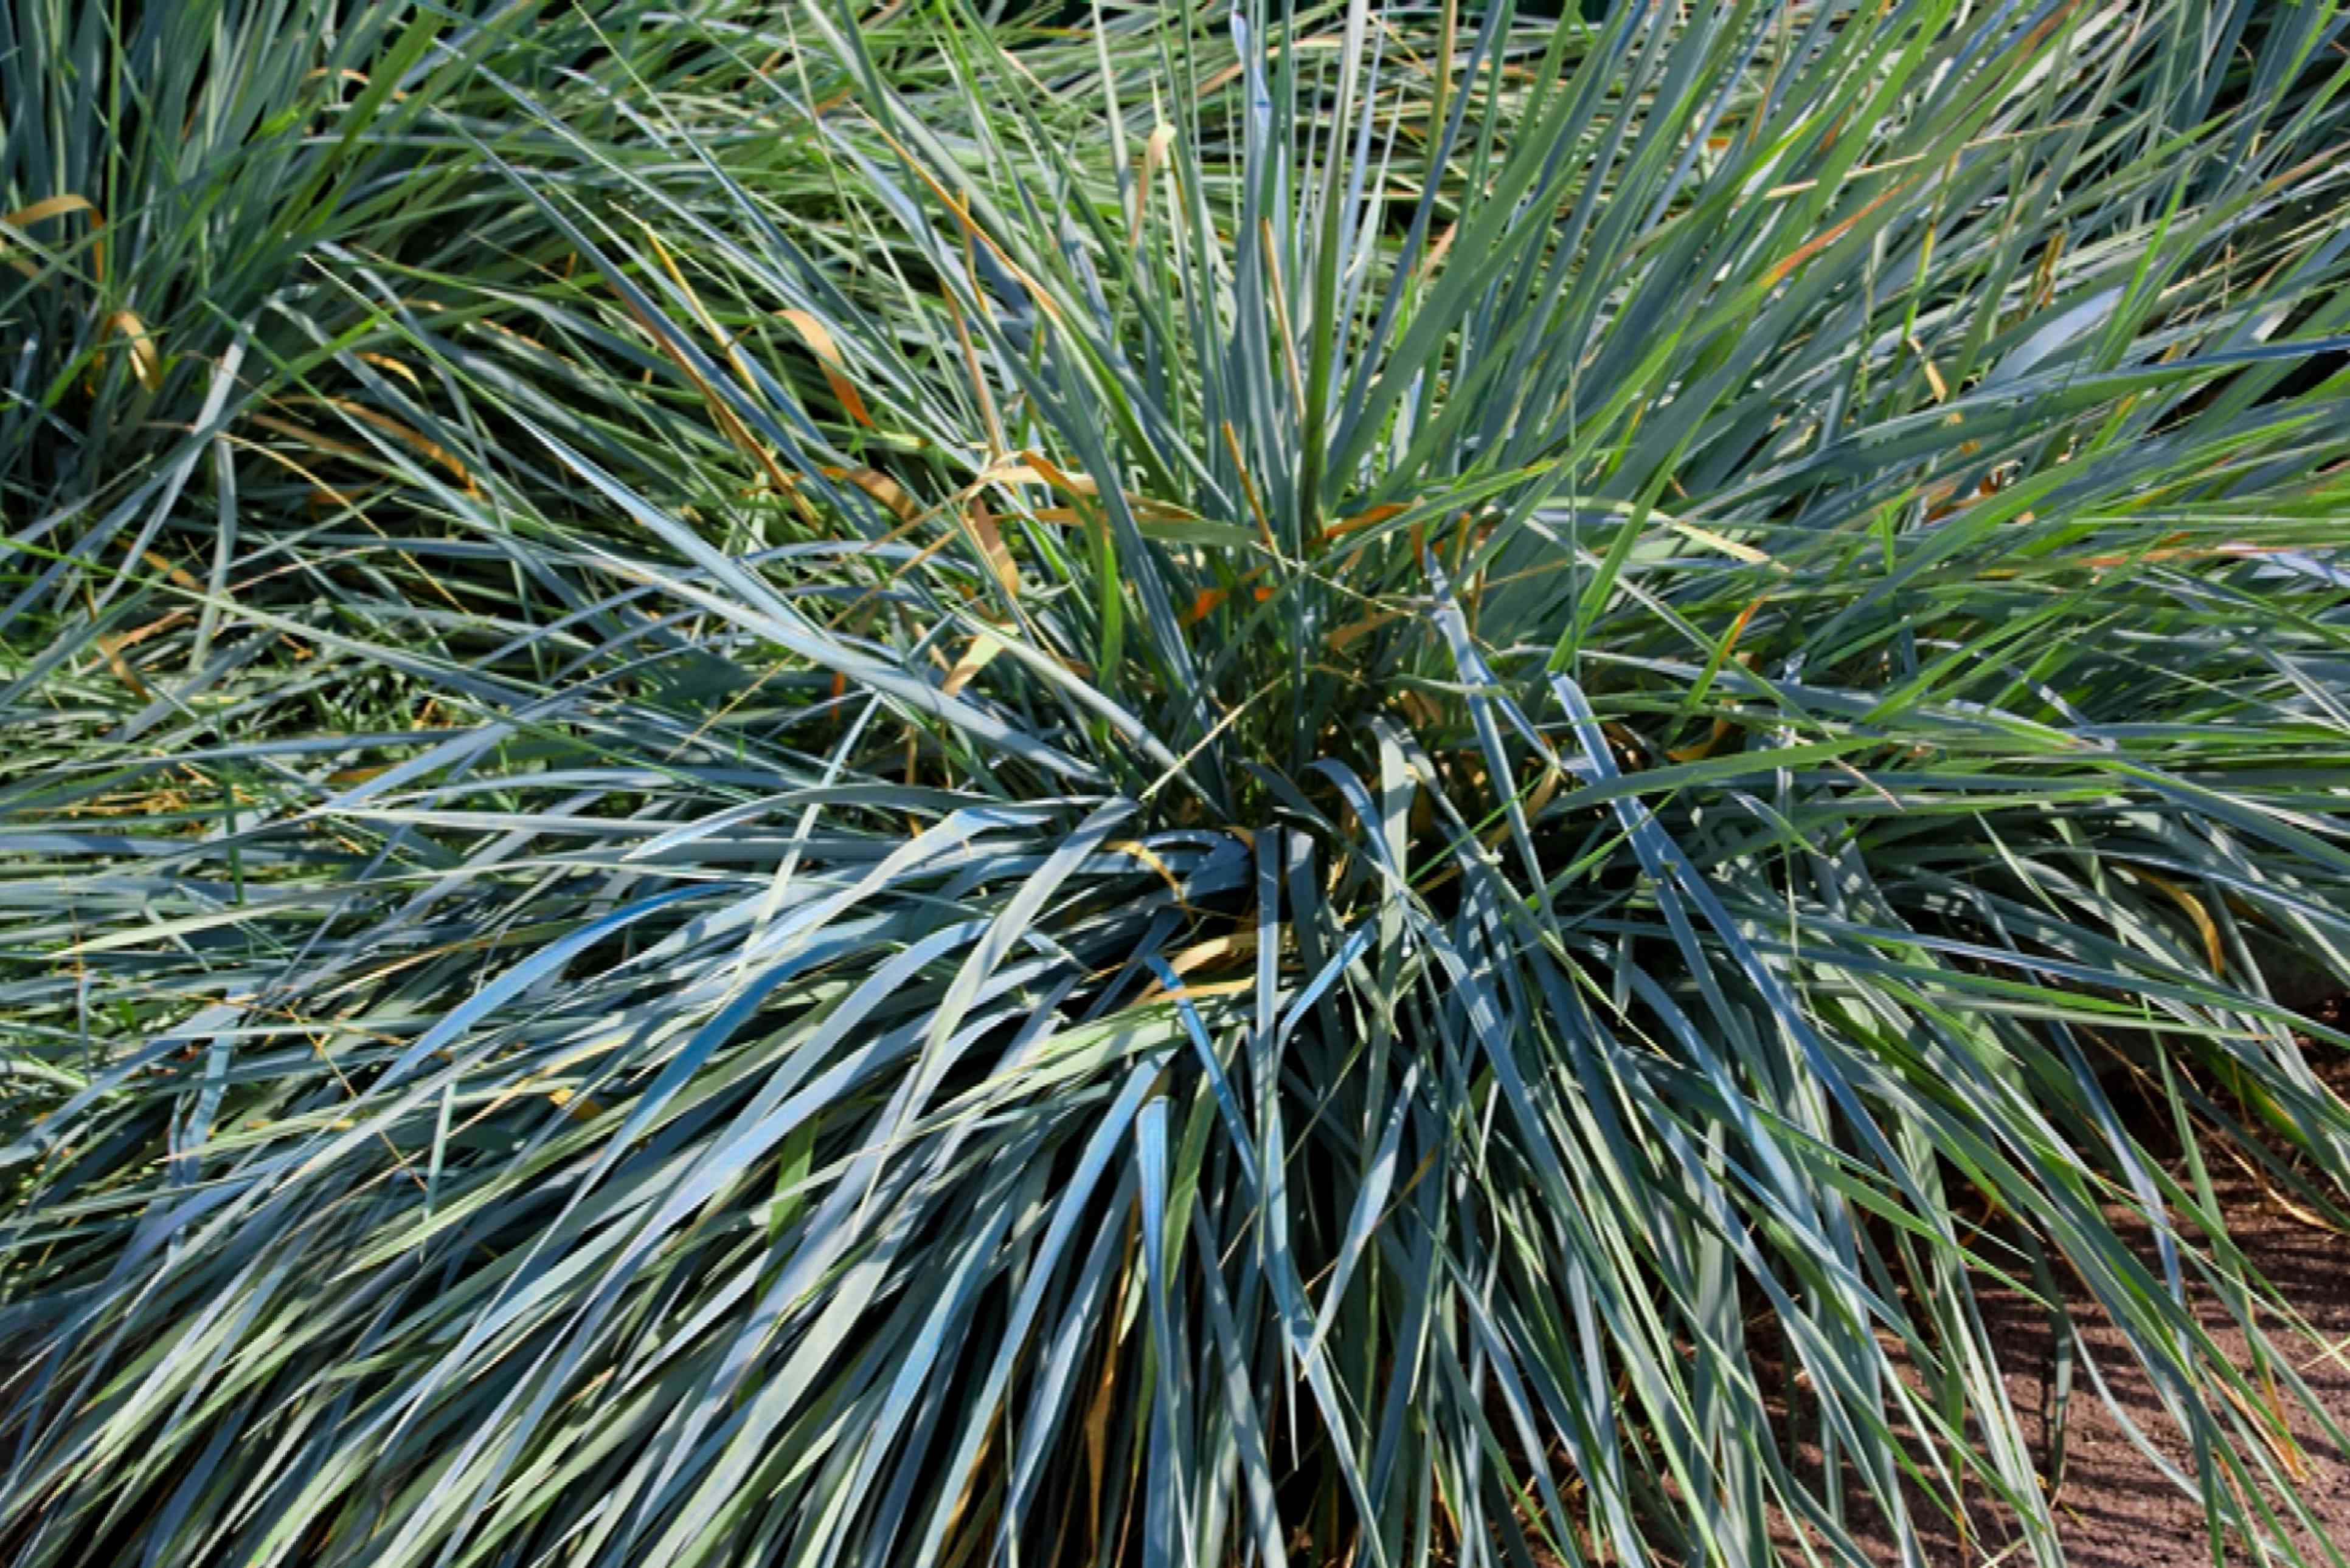 Ornamental grass with long bluish-green blades in sunlight